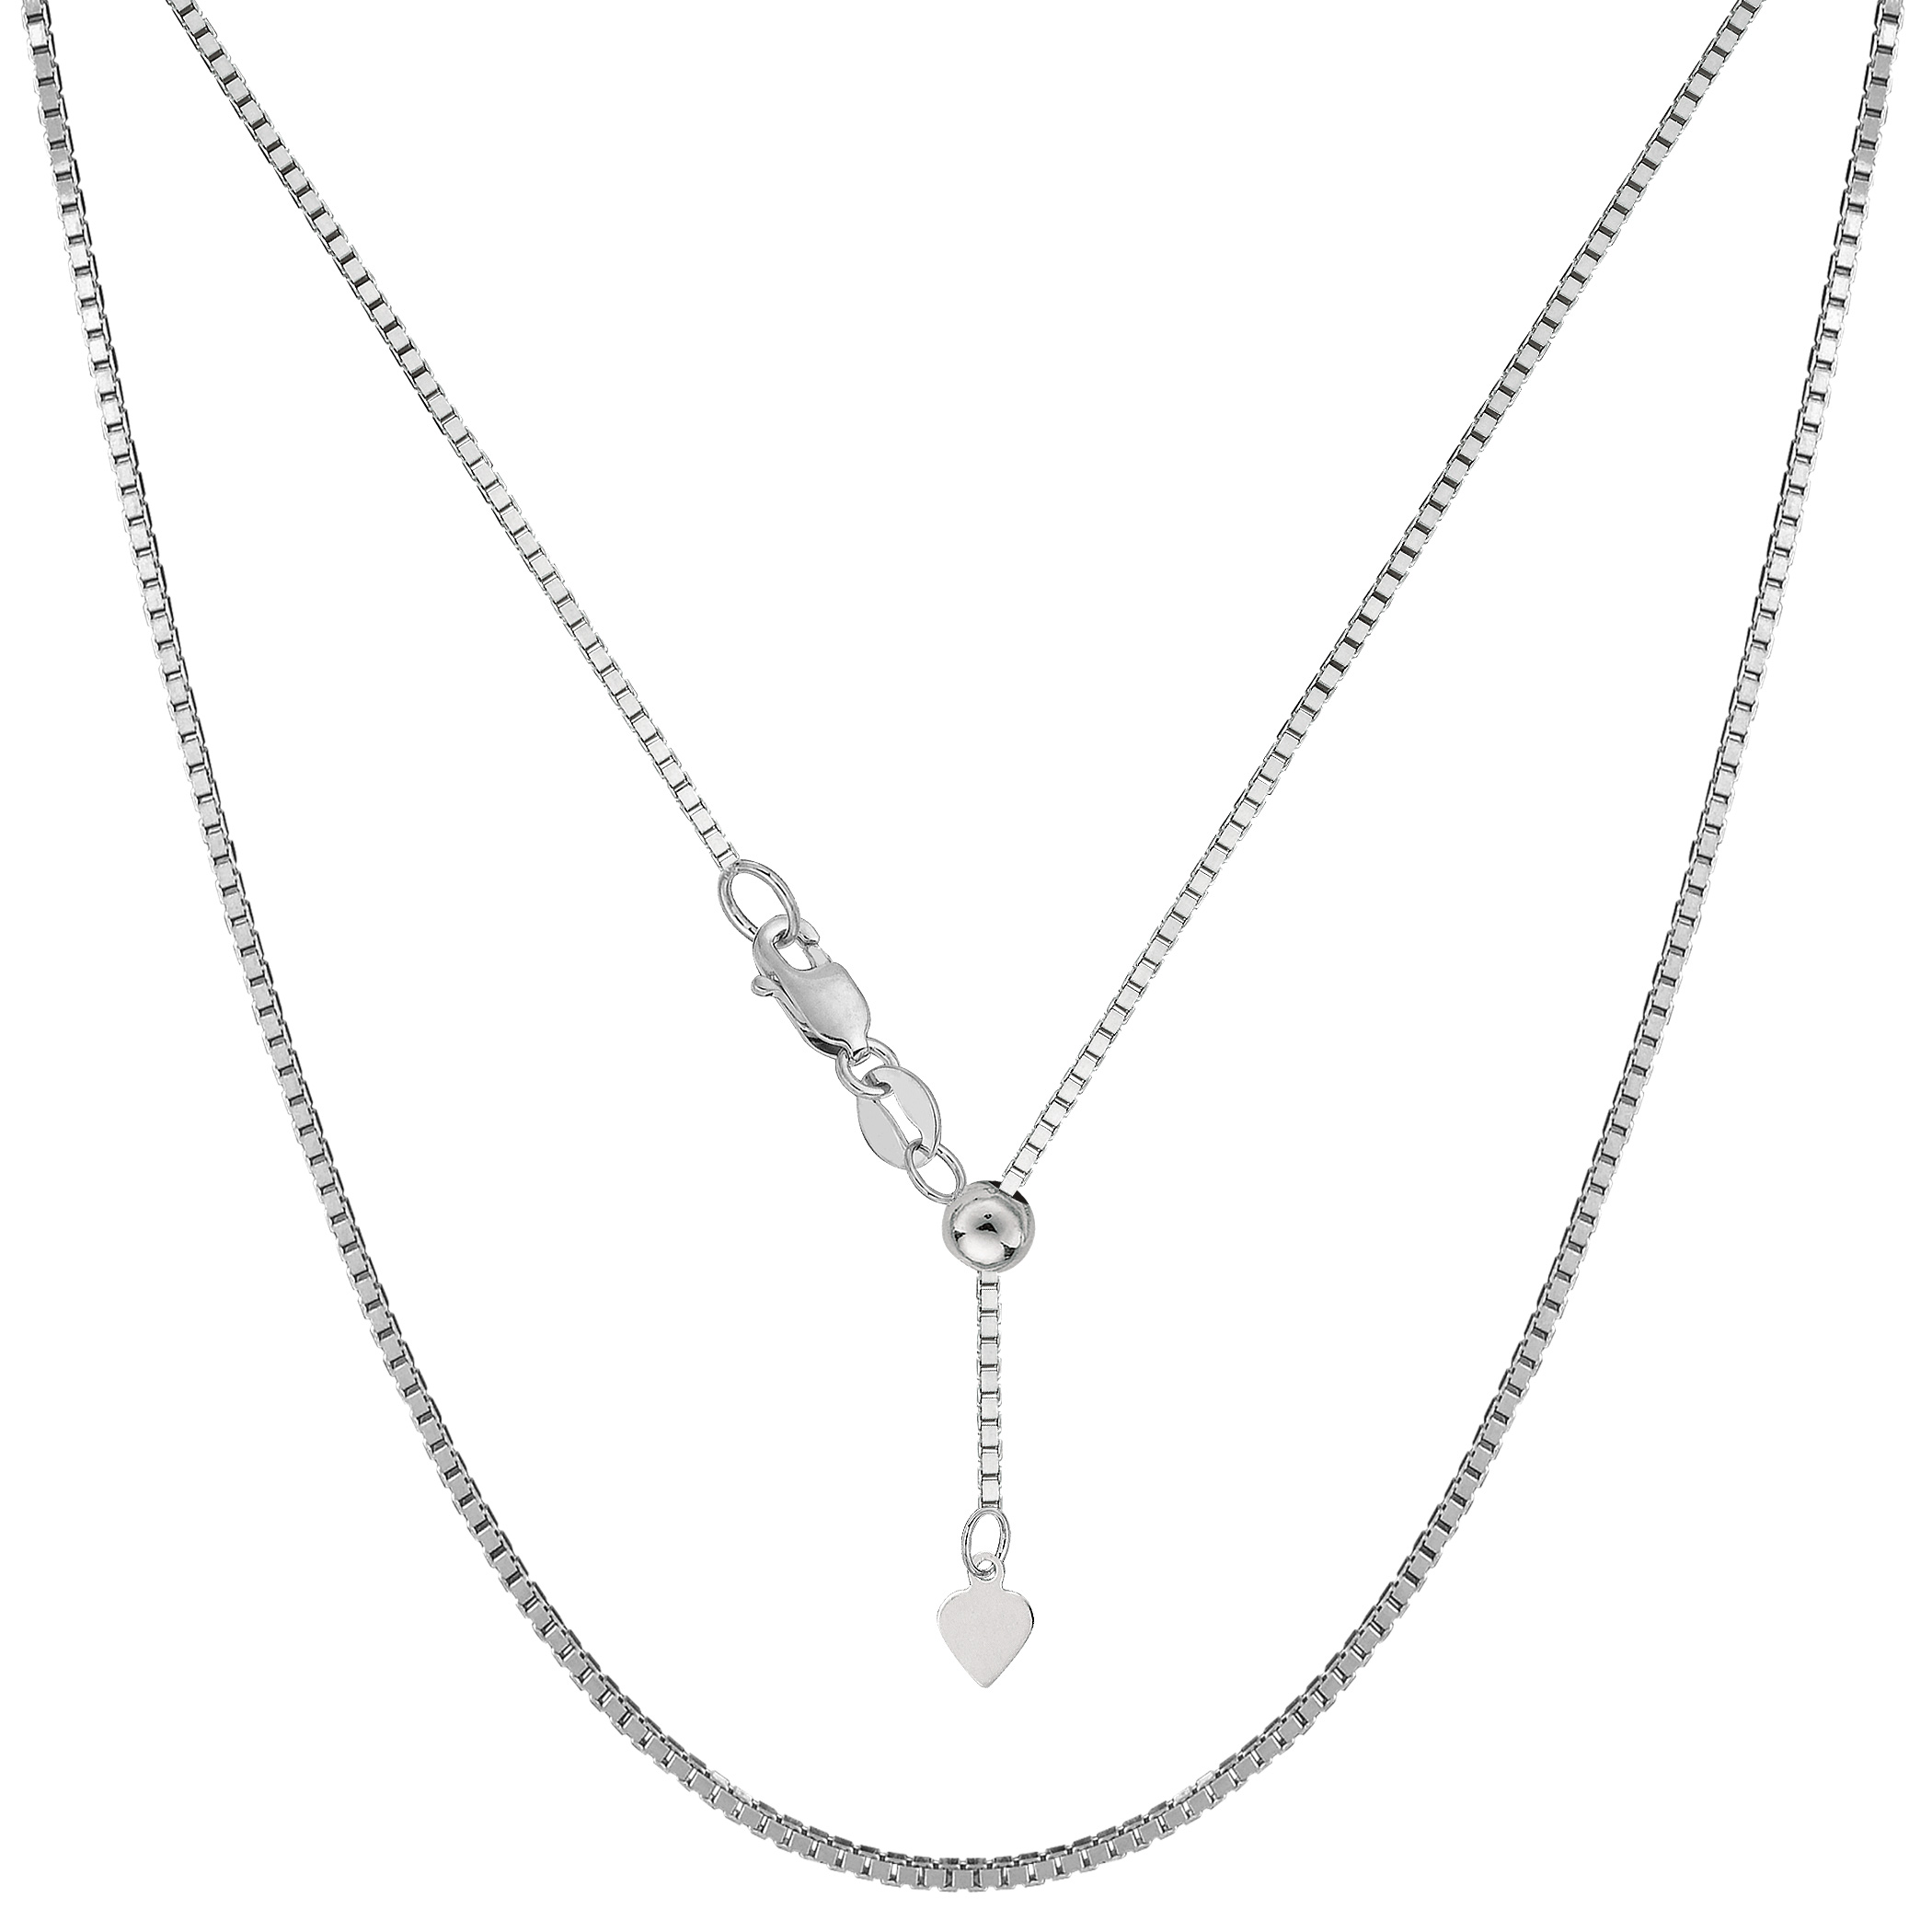 Sterling Silver Rhodium Plated Adjustable Box Chain Necklace, 1,2mm, 22  Using it by itself or combining it with charms and pendants, this 22 inch long adjustable box style chain is a perfect addition to any jewelry fashionista collection.